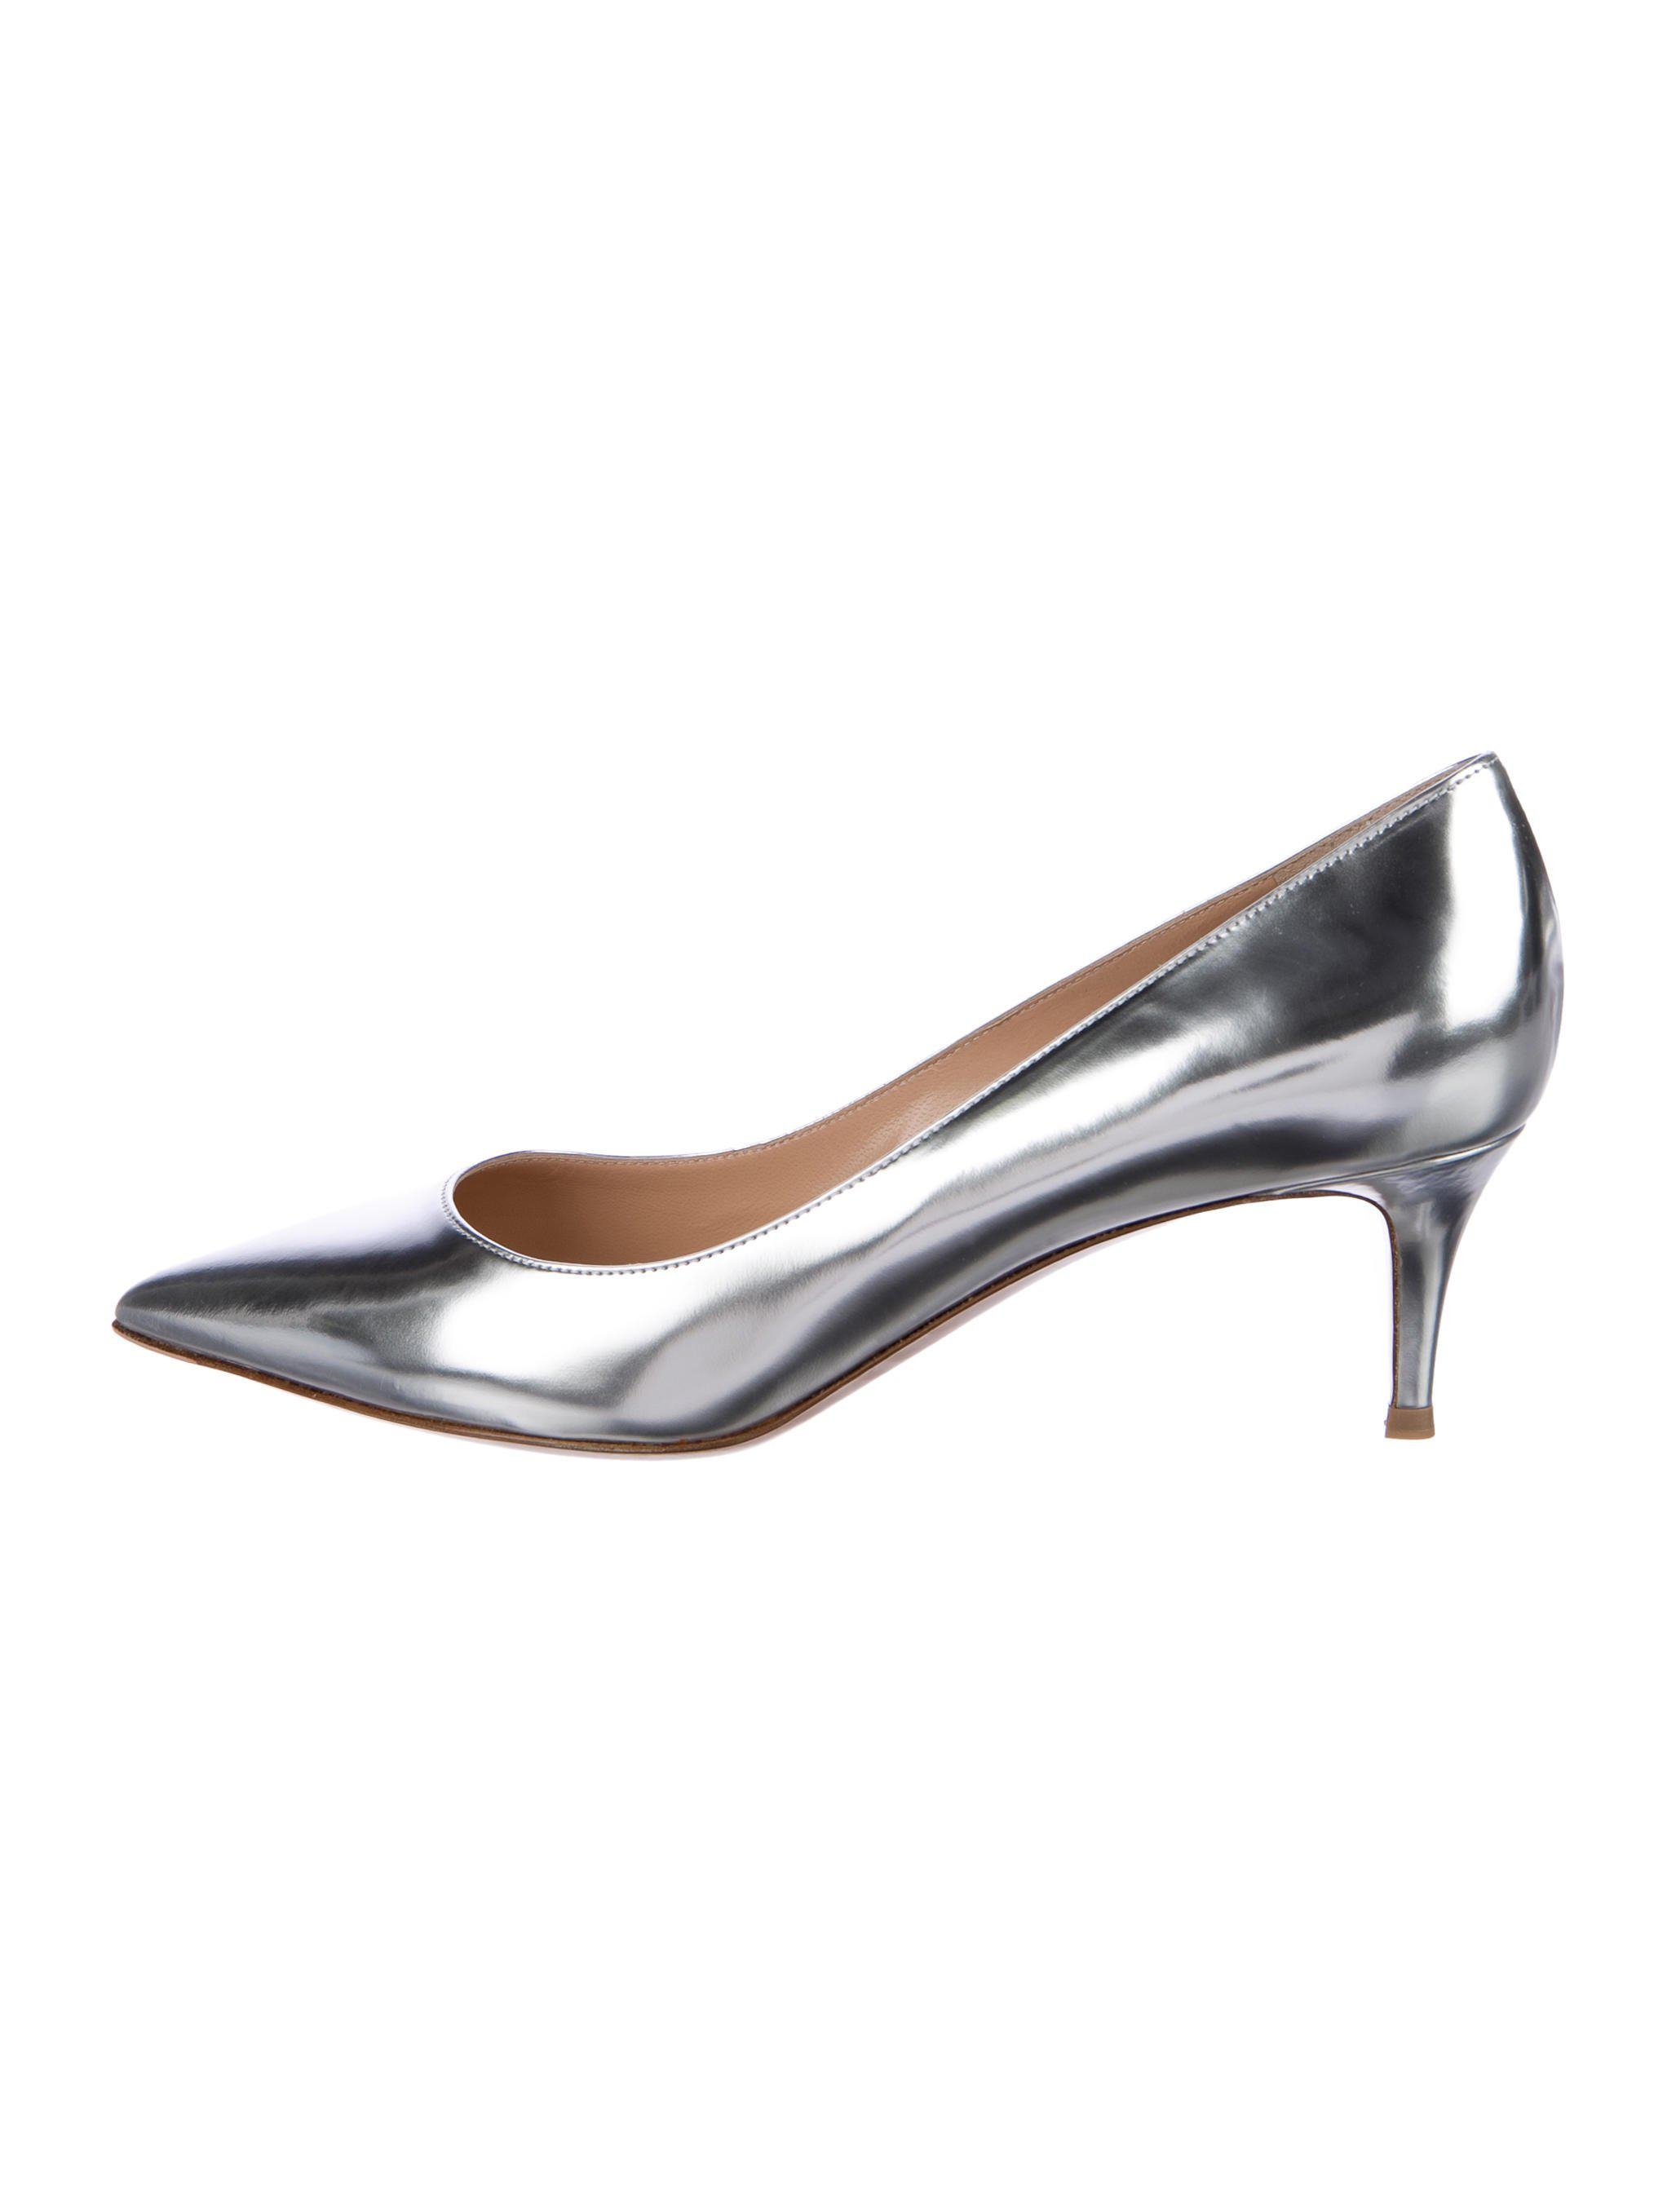 Gianvito Rossi Kiss Metallic Pumps w/ Tags websites cheap online clearance cheap price clearance store for sale cheap manchester great sale Po0zgjOS